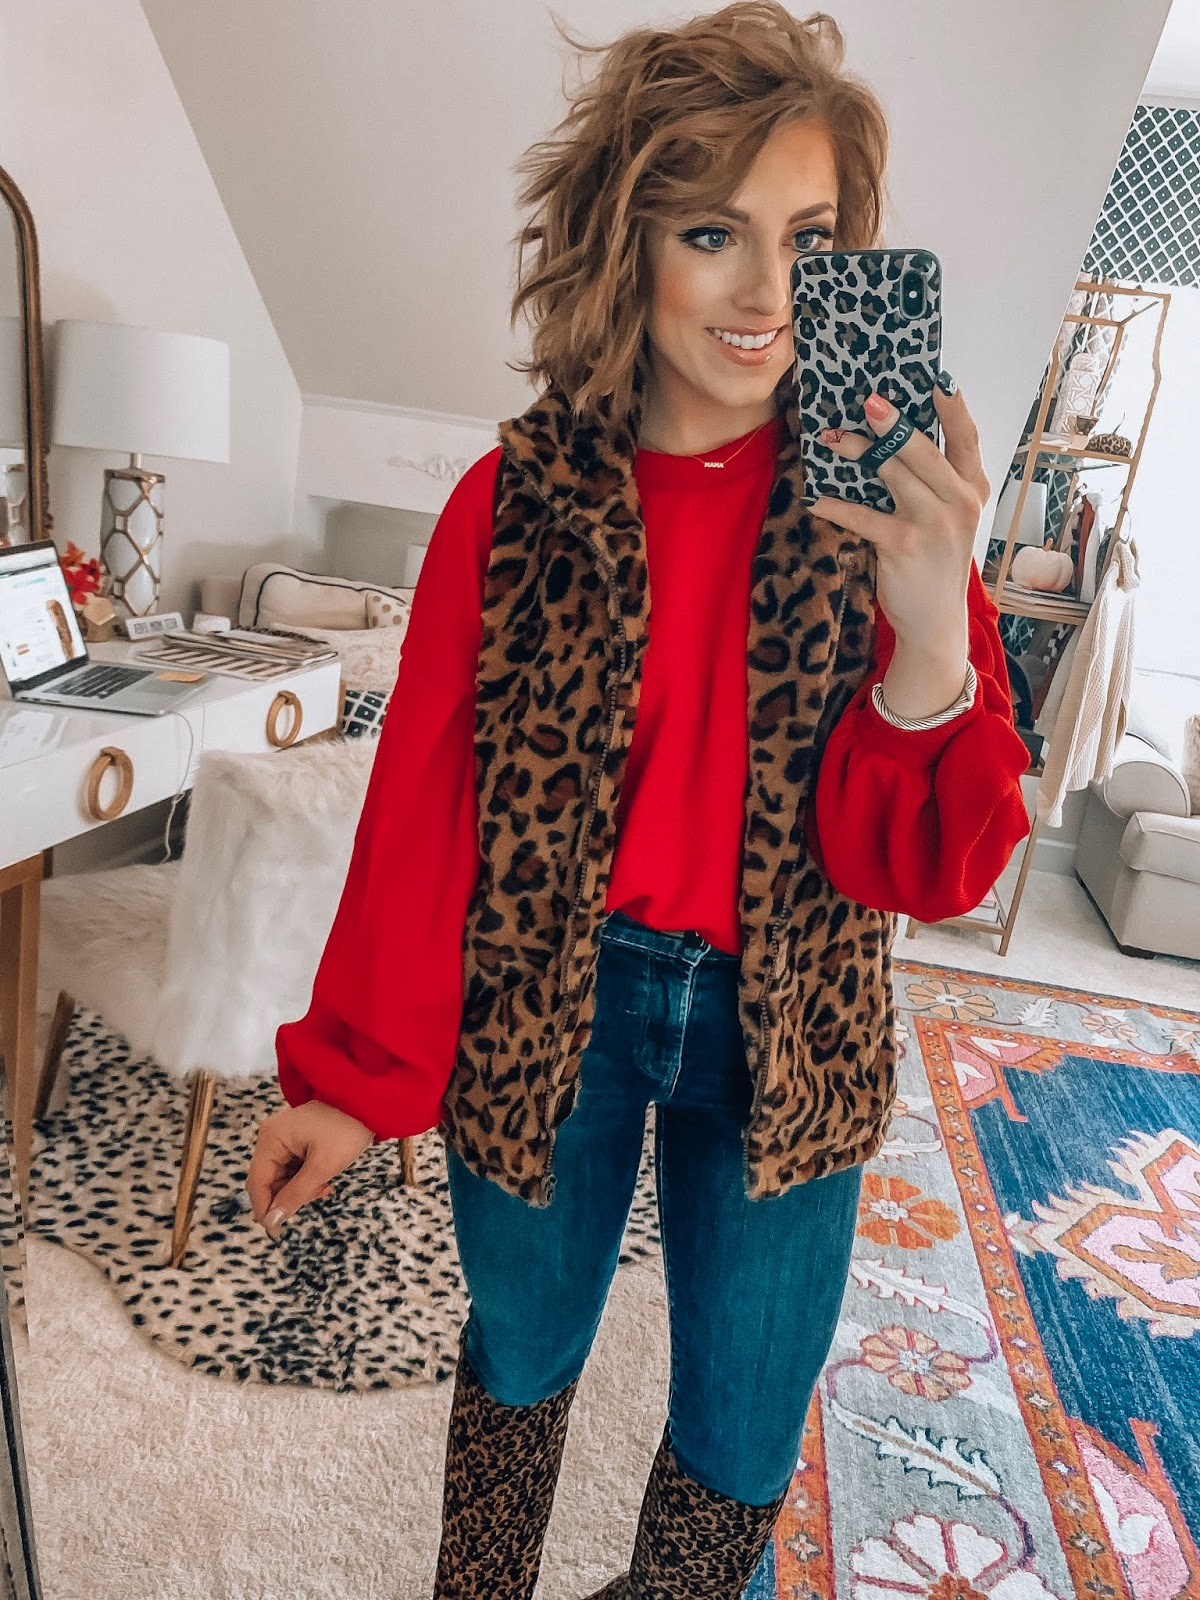 Recent Amazon Finds - Sweaters, Skirt, Vest, Kid's Finds and a Great Gift Idea! - Something Delightful Blog #amazonfashion #affordablestyle #fallstyle #holidaystyle